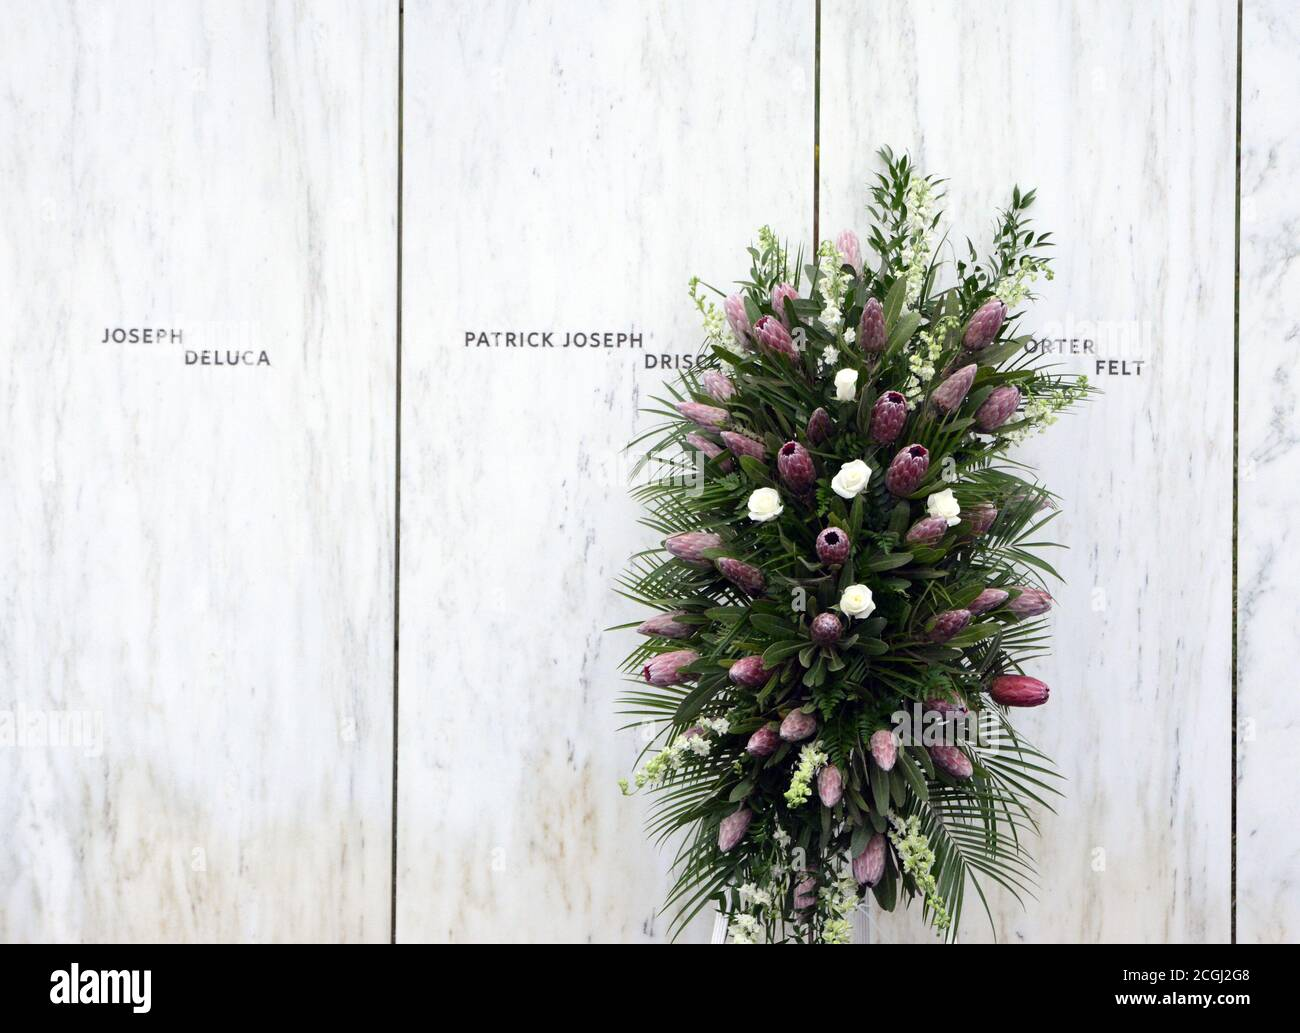 Shanksville, United States. 11th Sep, 2020. A floral display along